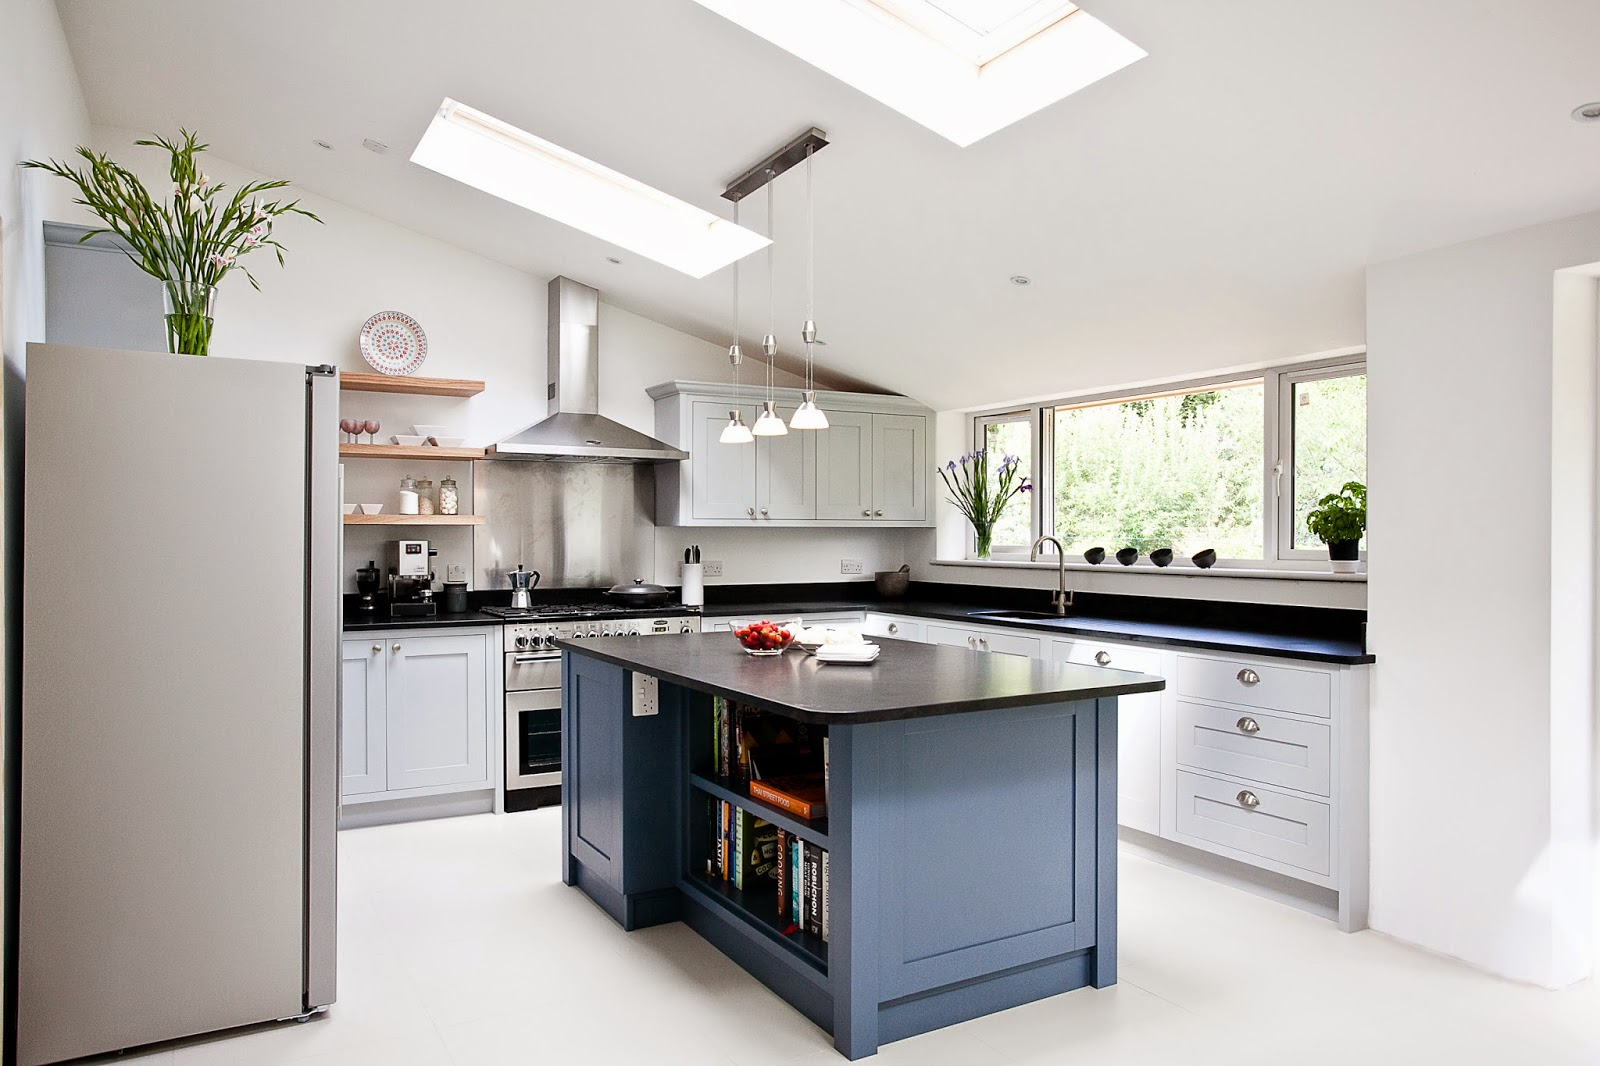 Maple & Gray: Blue & Grey Kitchen